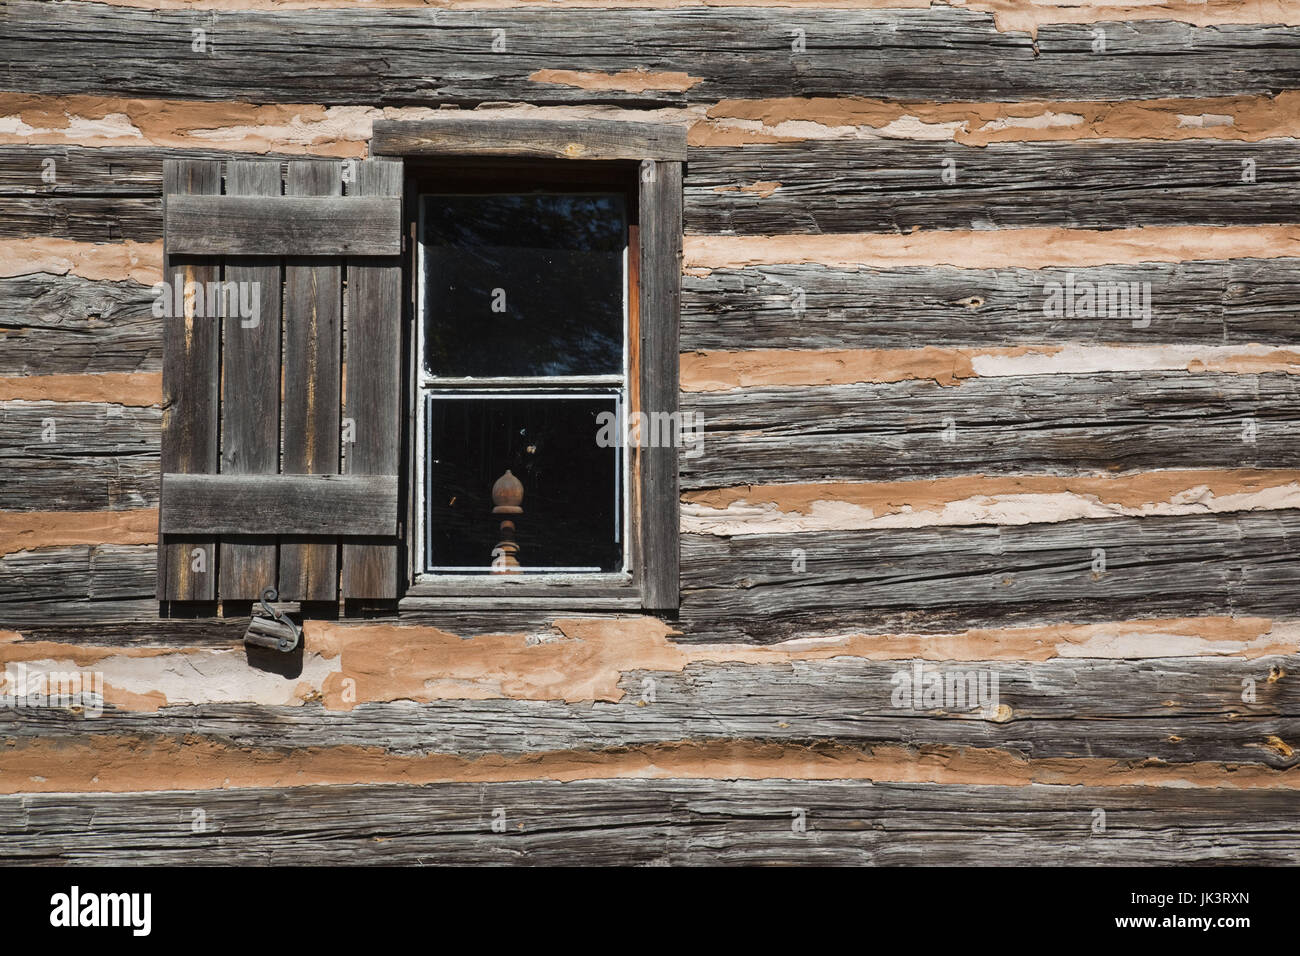 USA, Alabama, Montgomery, Old Alabama Town, Shotgun House, log cabin, exterior - Stock Image